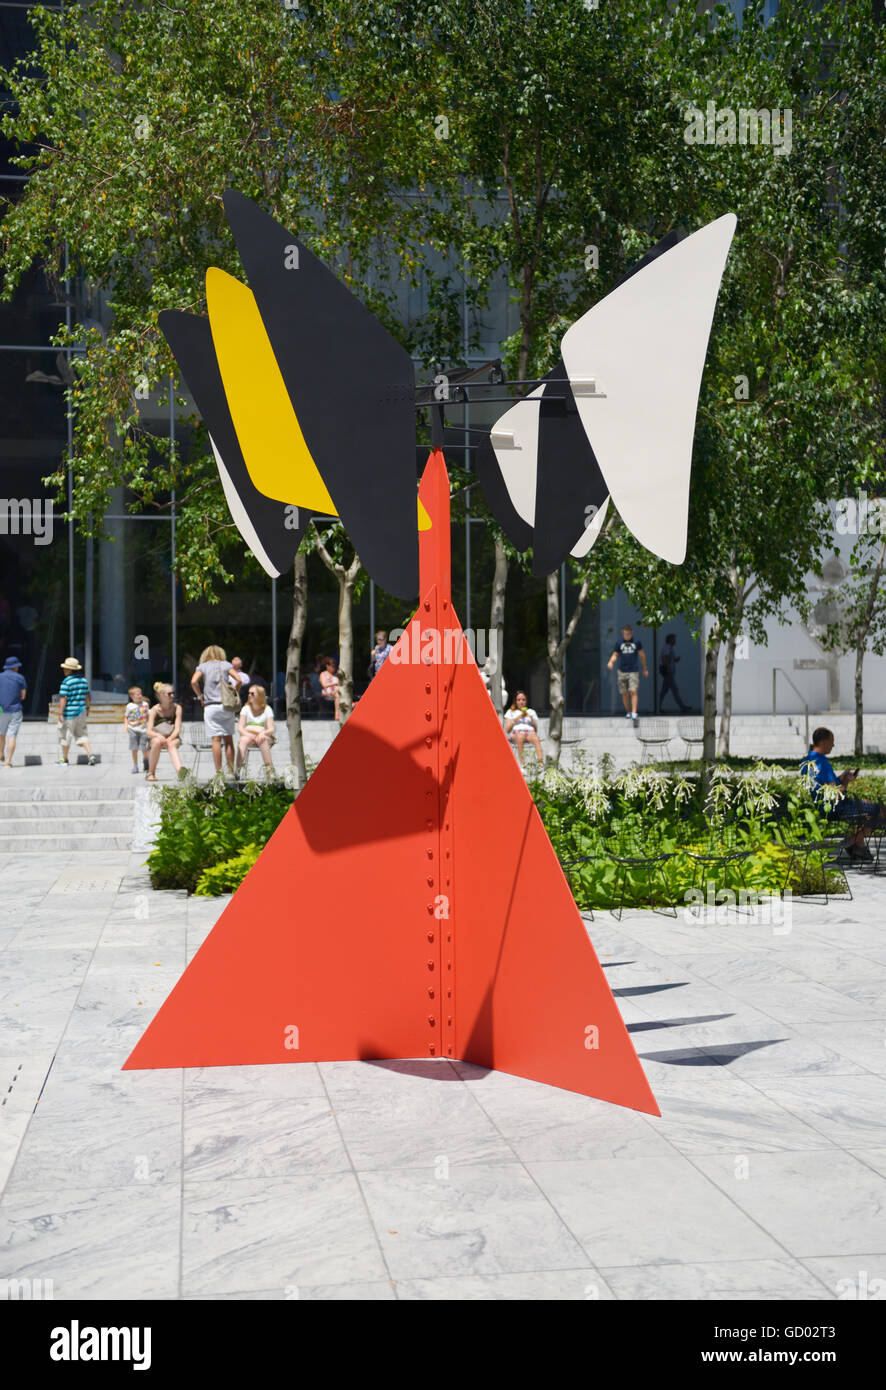 Sandyu0027s Butterfly, 1964, By Alexander Calder, Sculpture Garden At MOMA, NYC